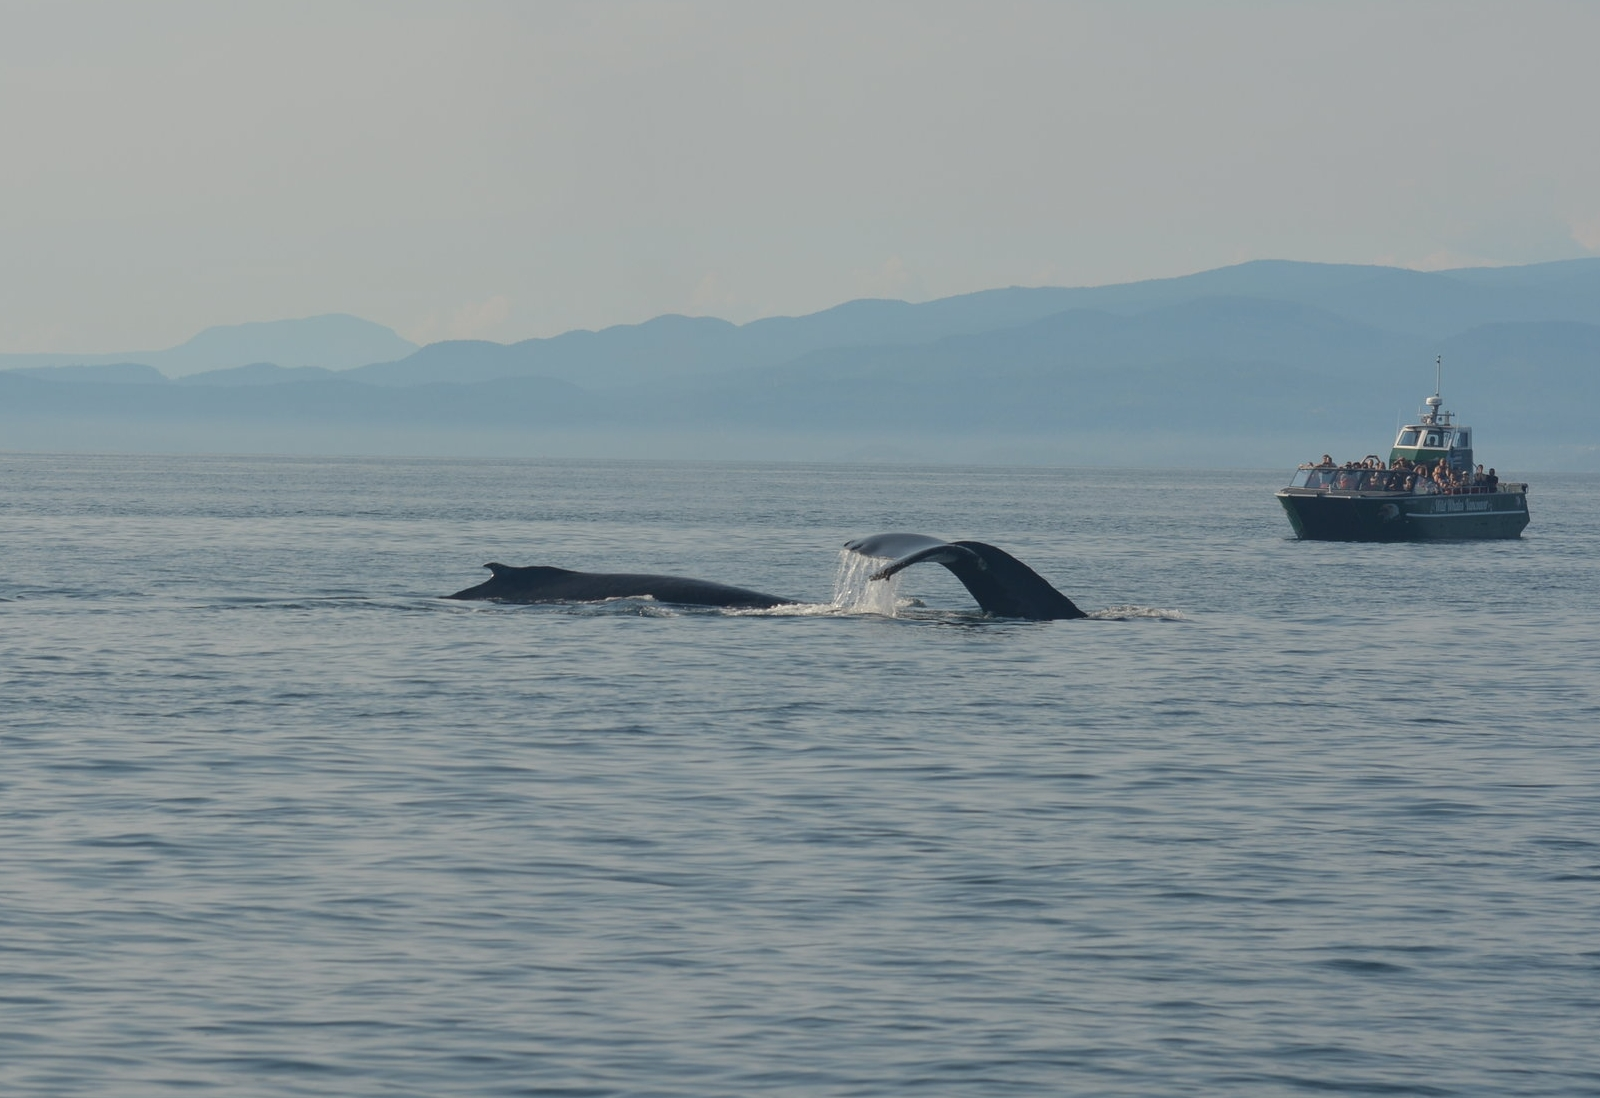 Humpbacks galore! Photo by Rodrigo Menezes.